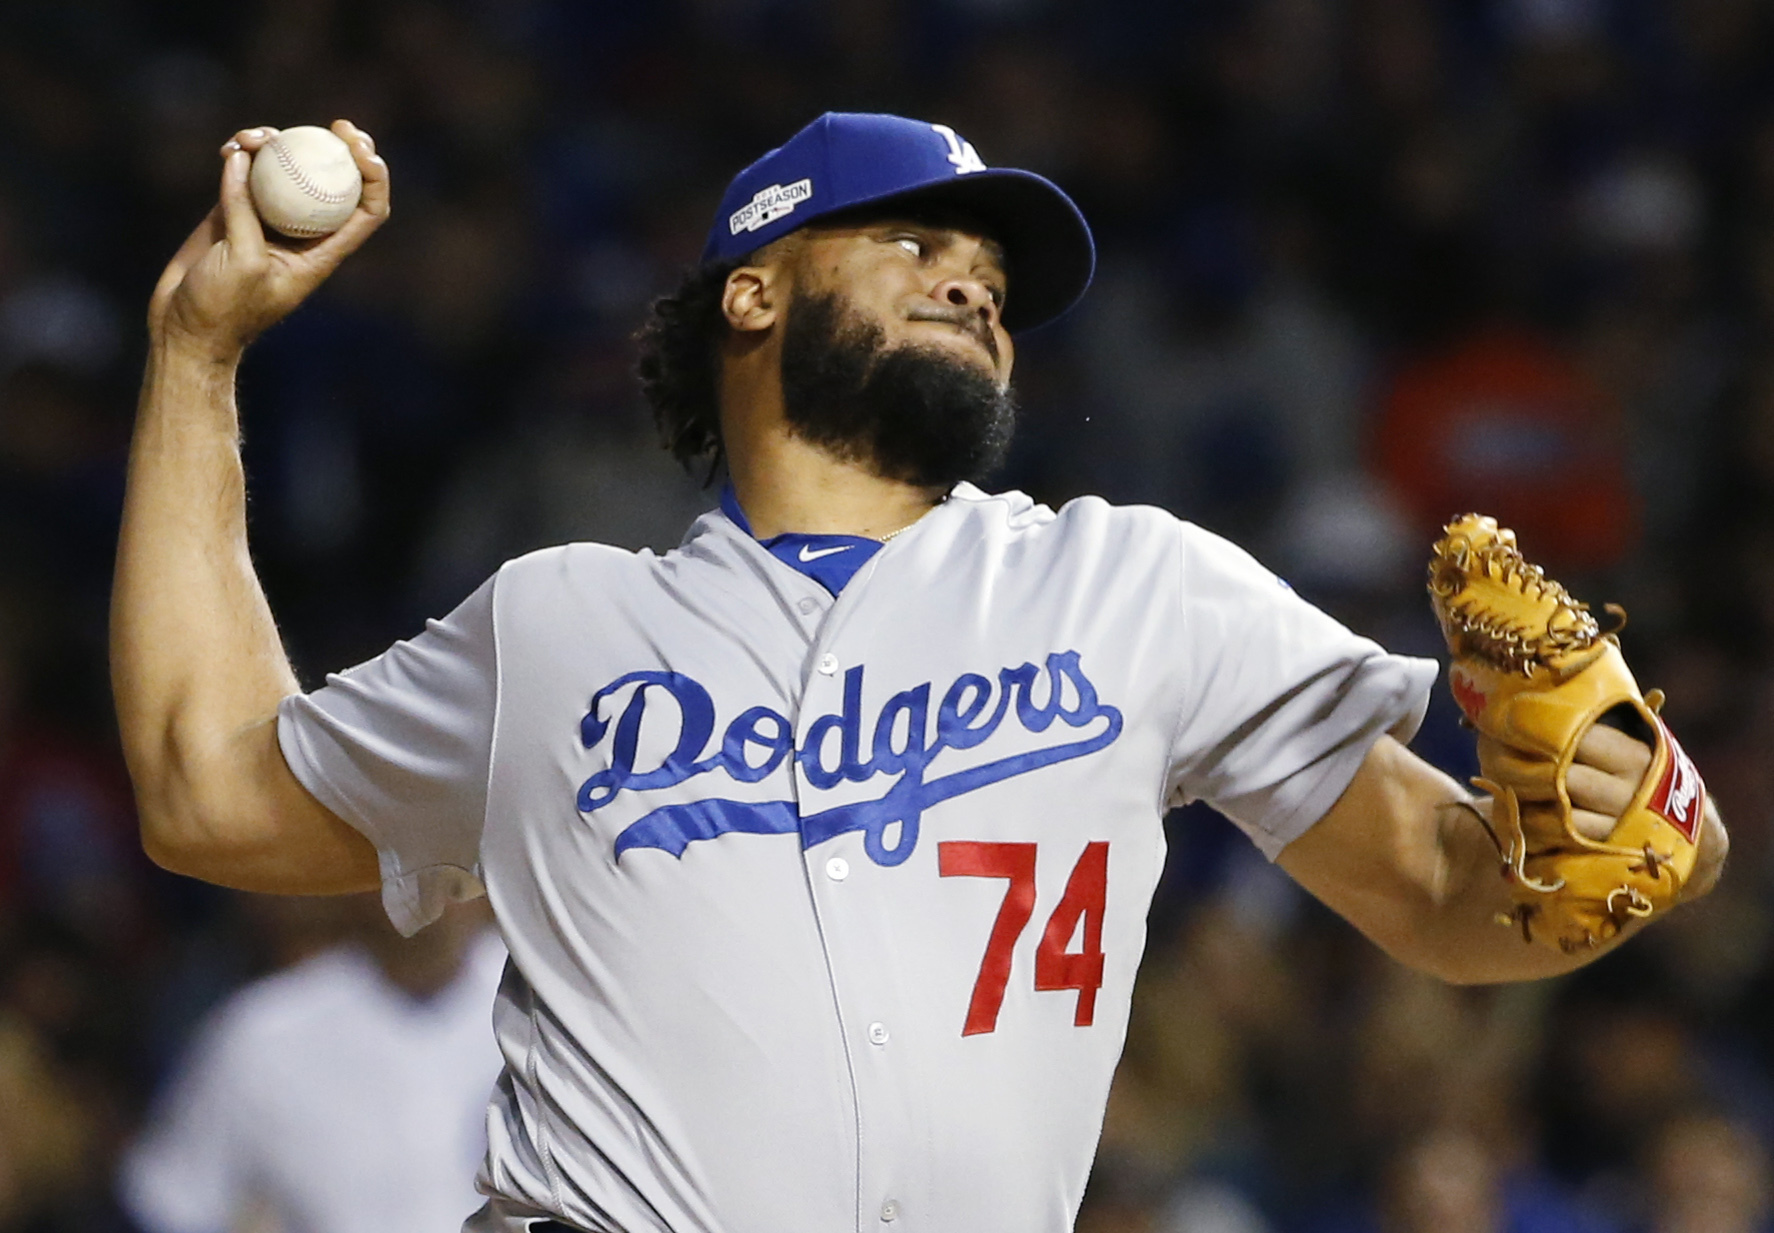 FILE - In this Oct. 22, 2016, file photo, Los Angeles Dodgers relief pitcher Kenley Jansen (74) throws during the sixth inning of Game 6 of the National League baseball championship series against the Chicago Cubs, in Chicago. The Dodgers have extended $1